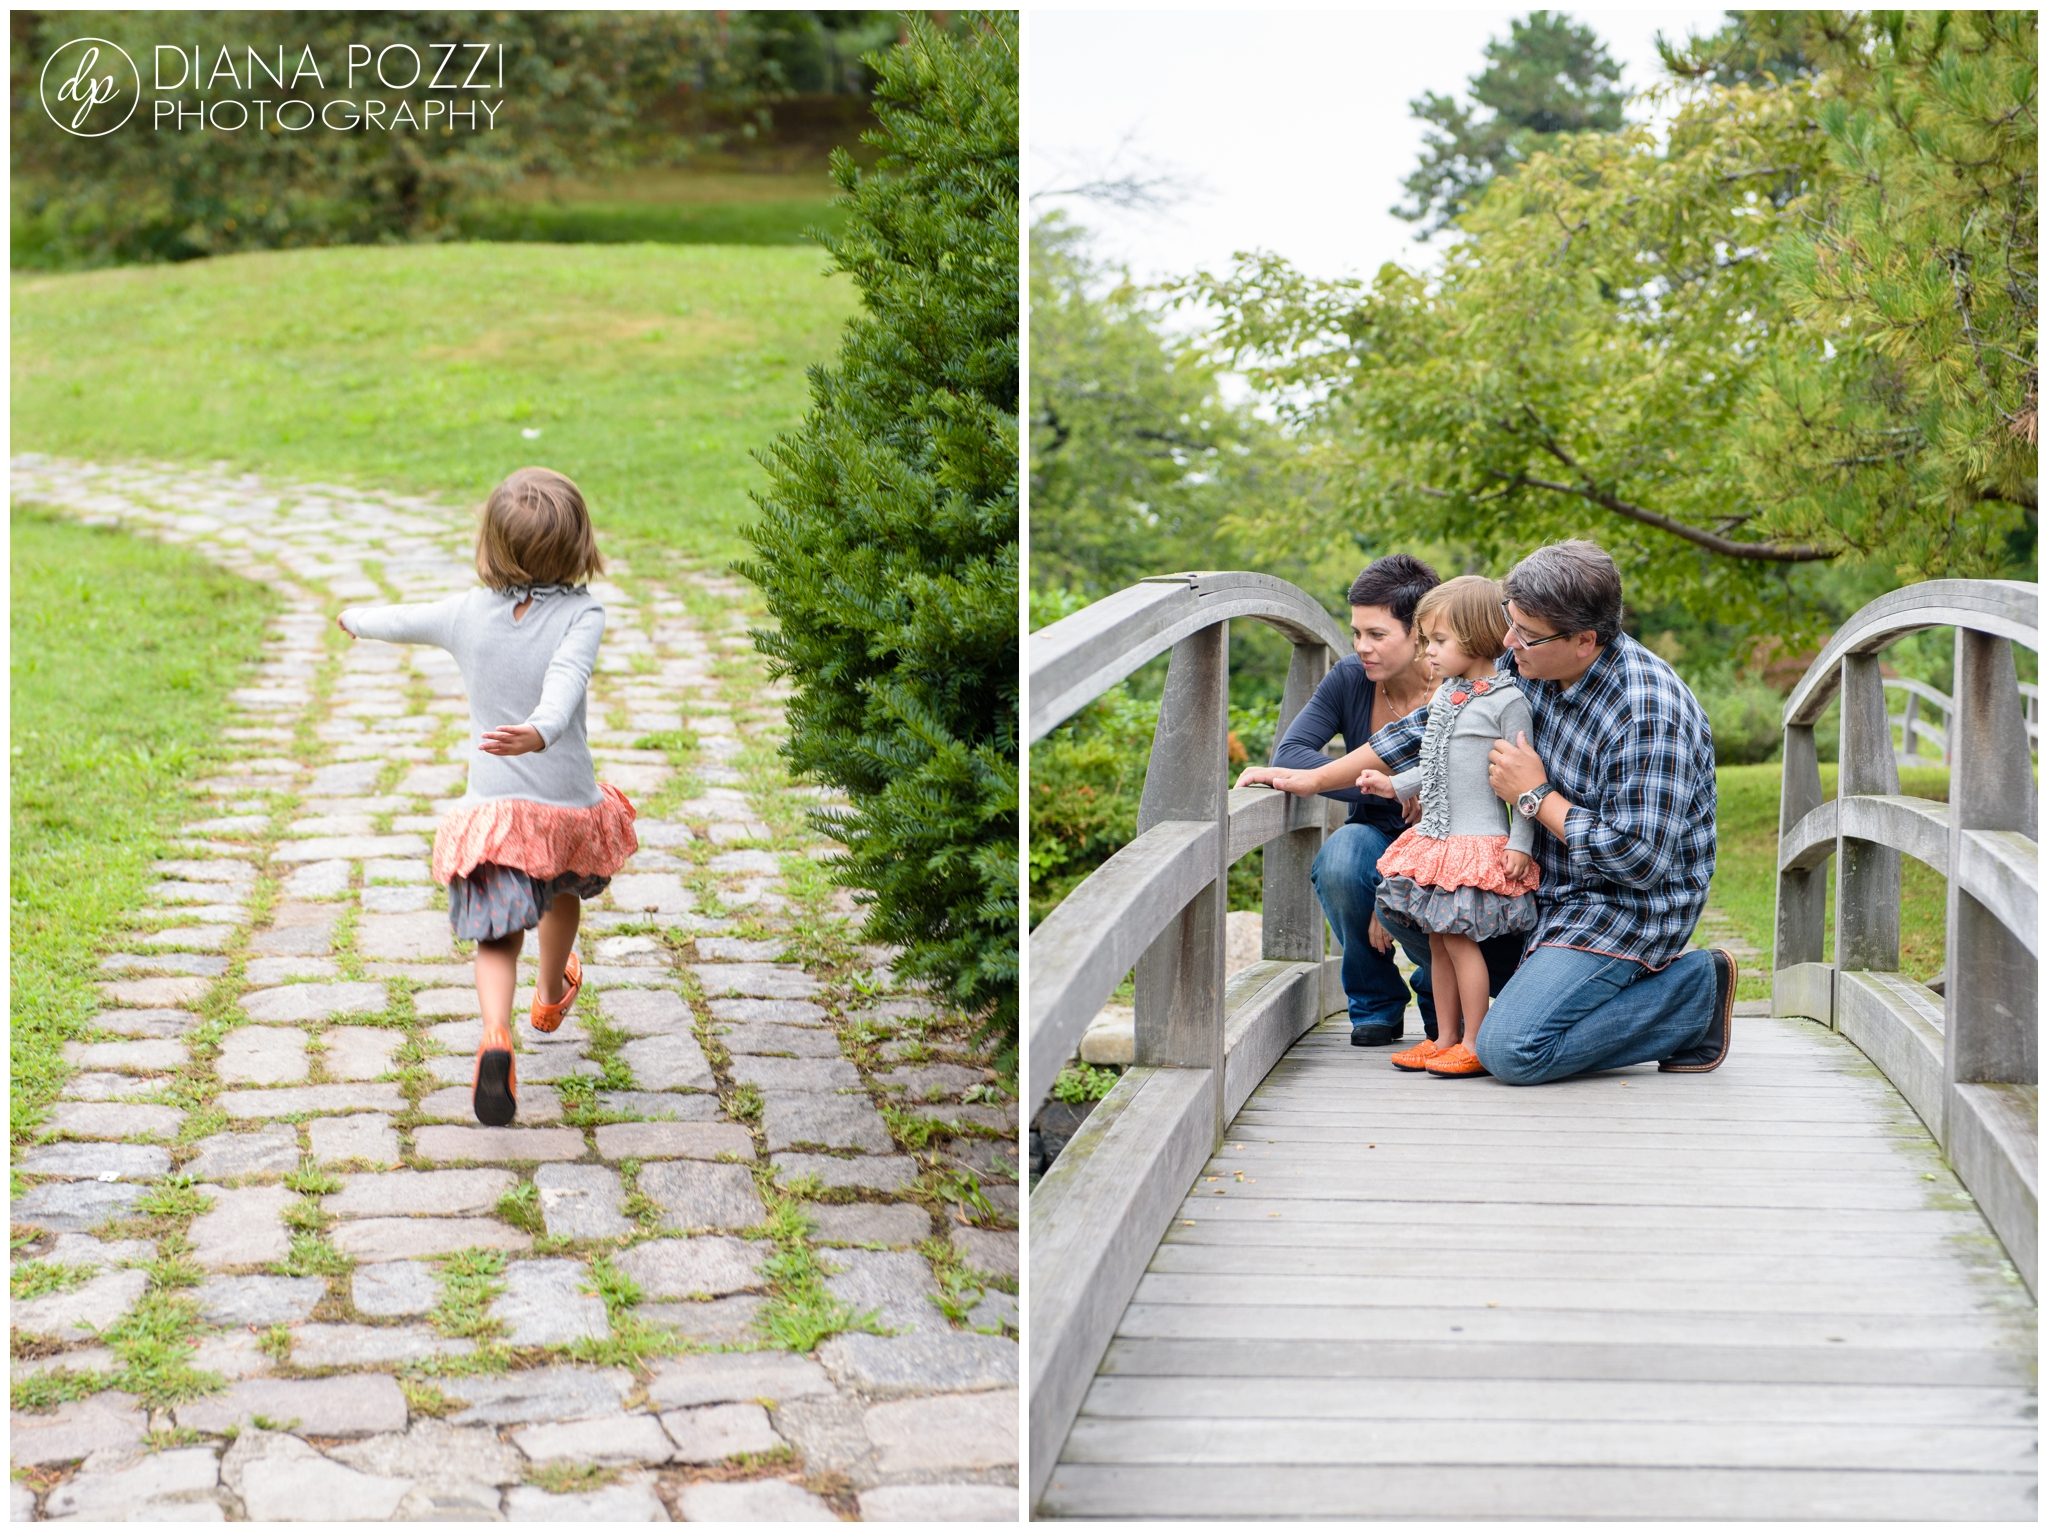 Birthday Party Photography DIANA POZZI PHOTOGRAPHY - Children's birthday parties ri